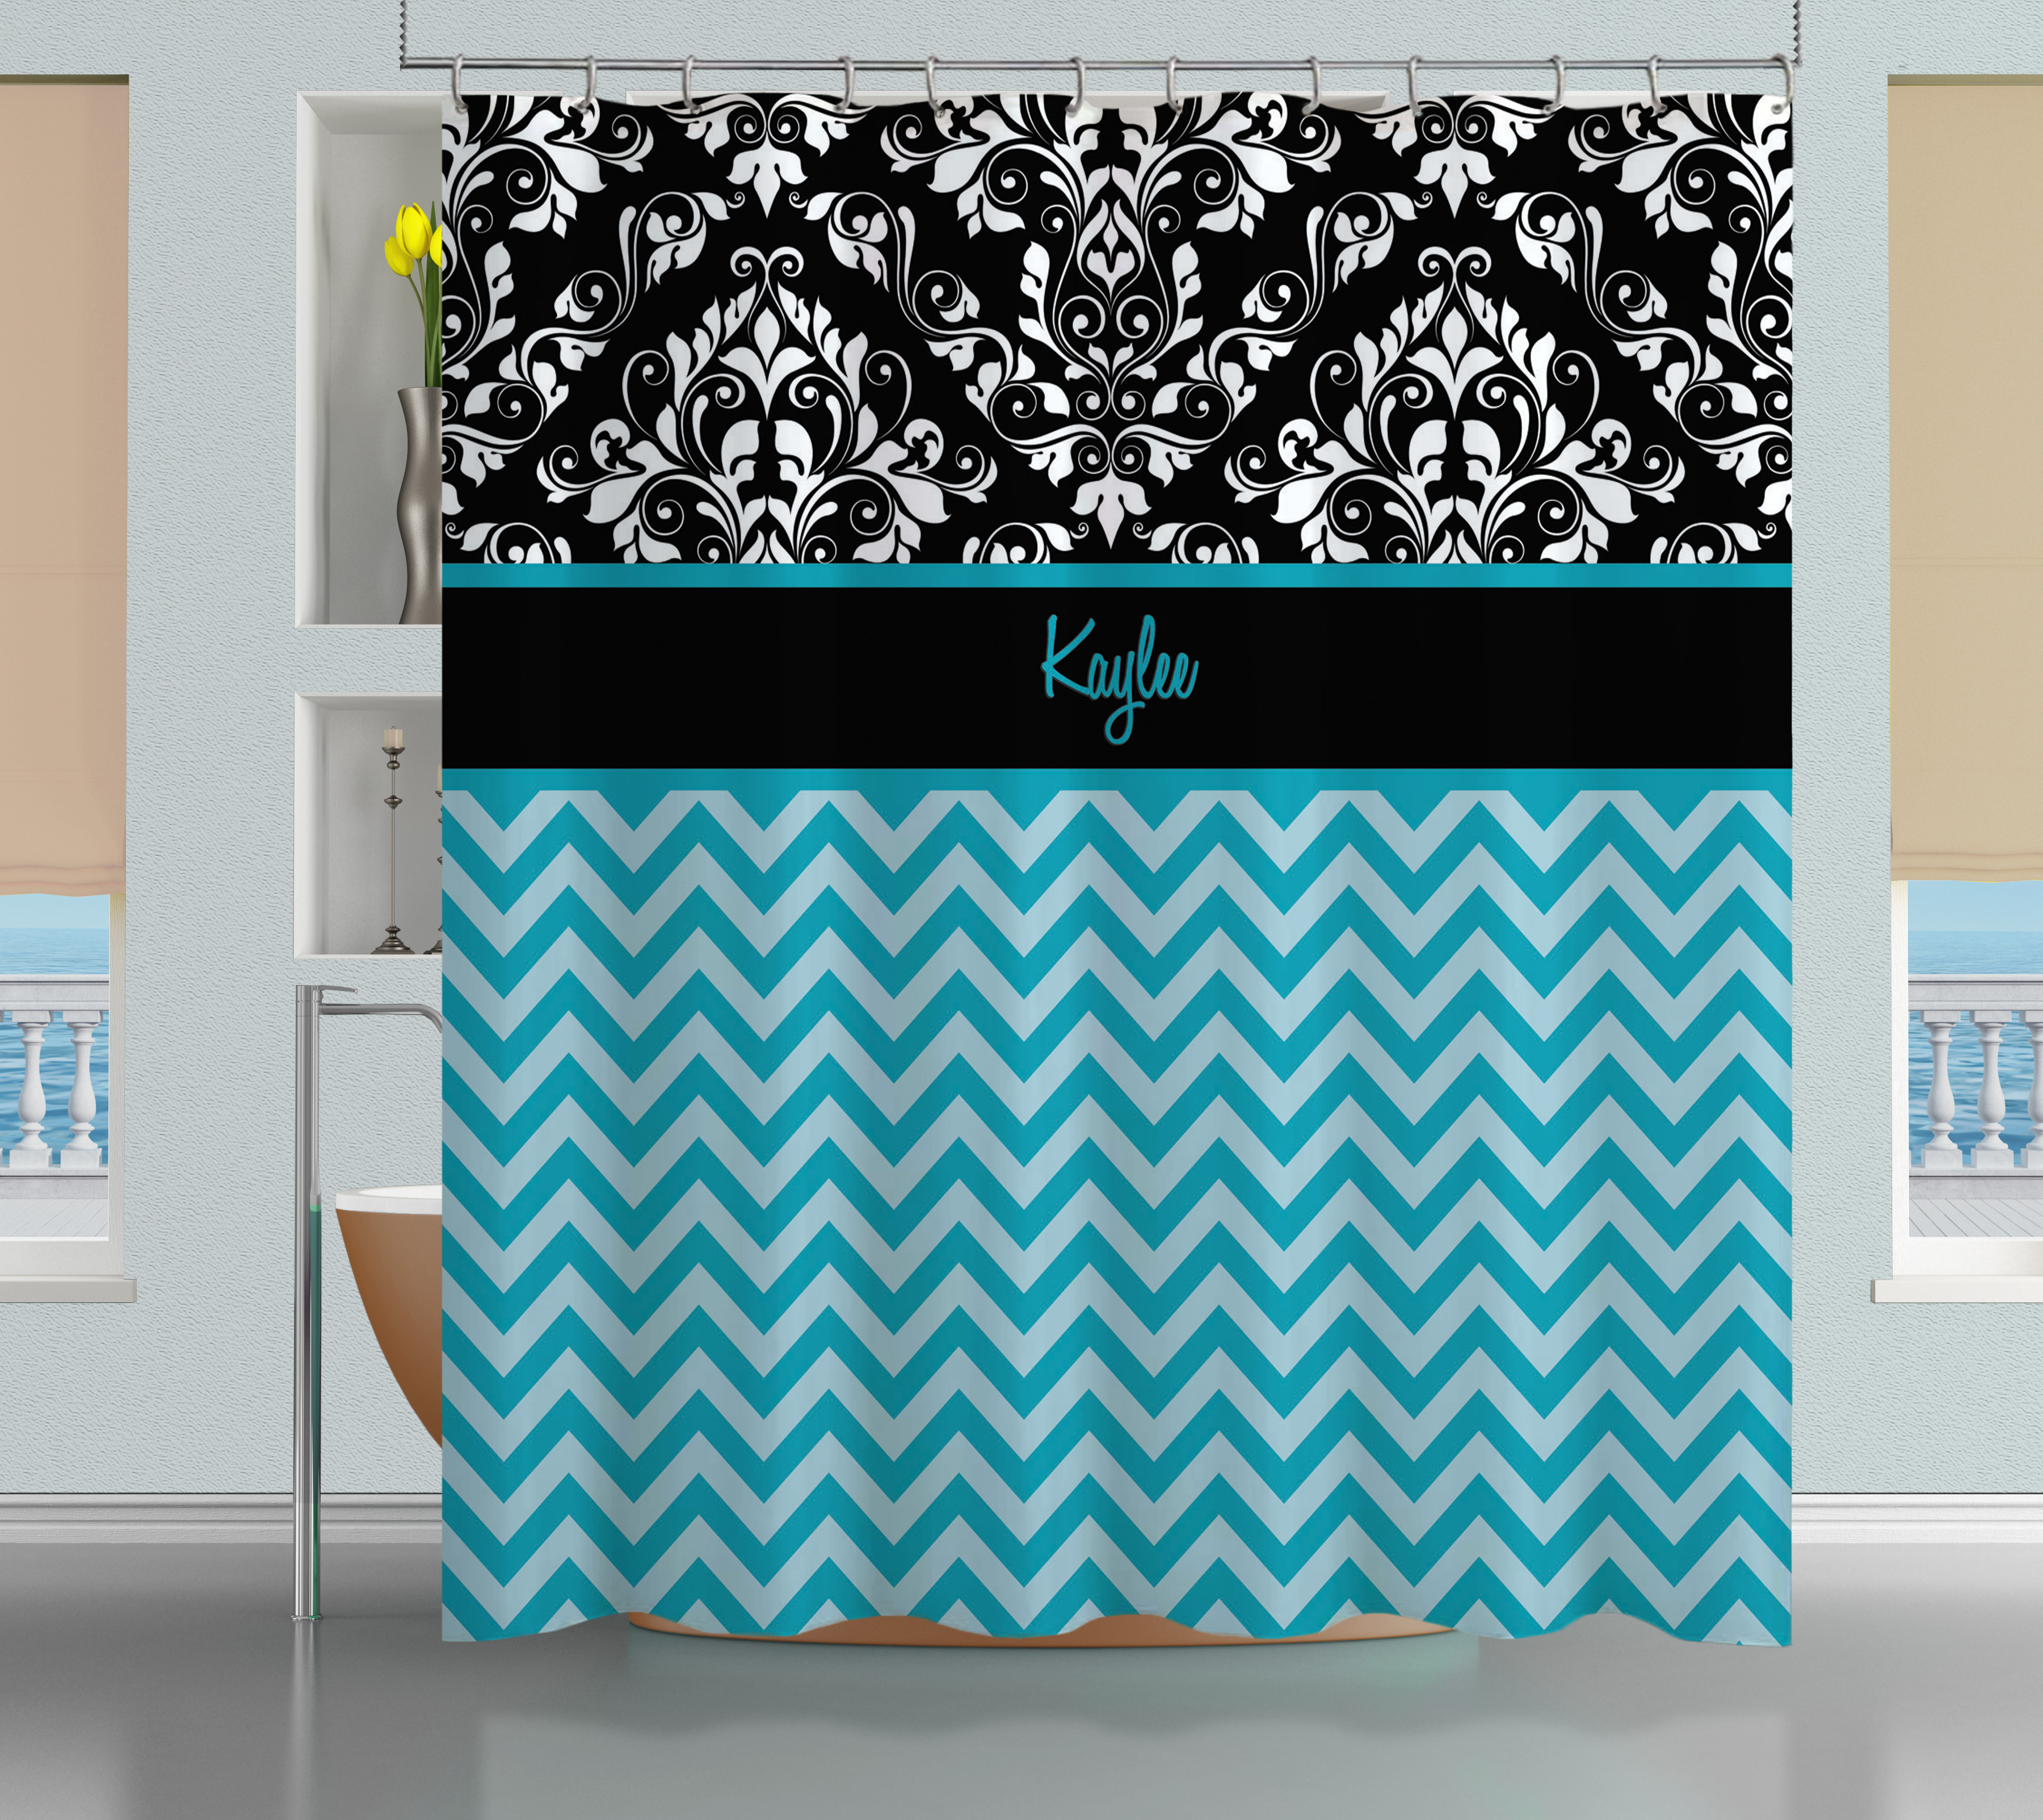 Blue Chevron And Black And White Damask Shower Curtain Black Fabric Extra Large Shower Curtain 1 Eloquent Innovations